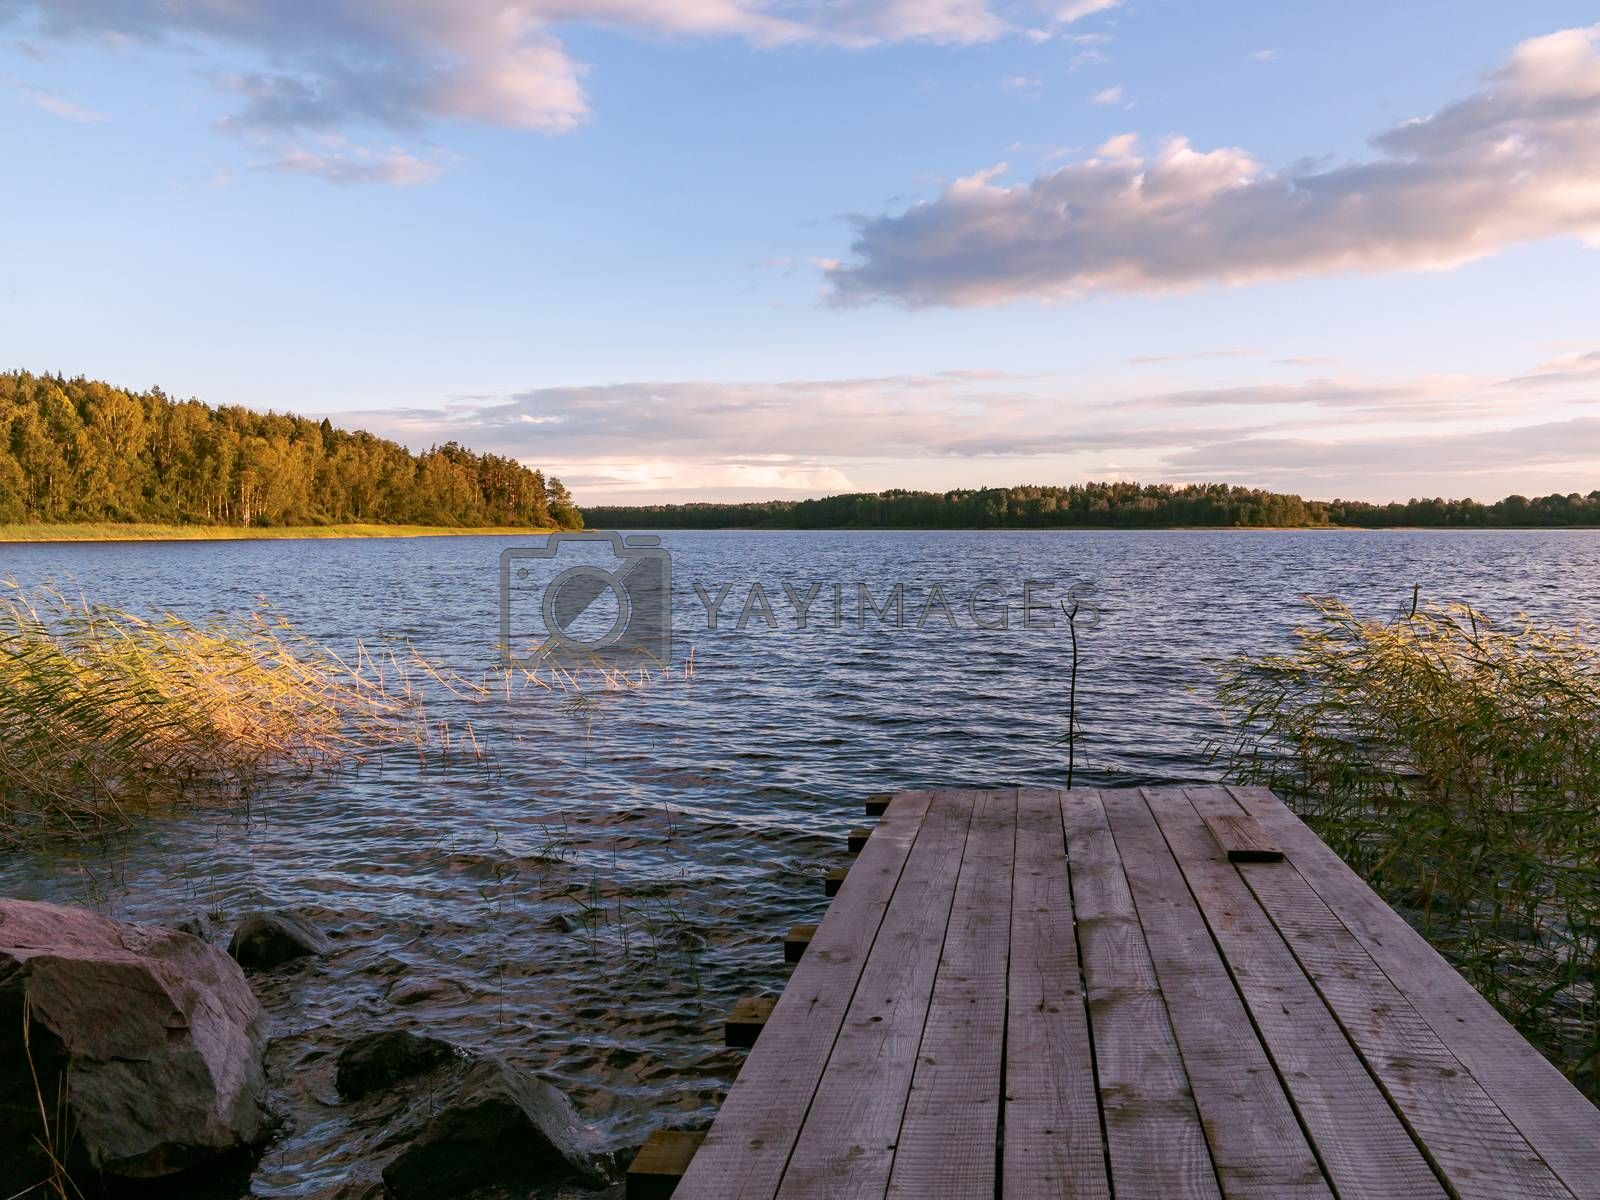 Wooden footbridge on the lake on a summer day at sunset by galsand